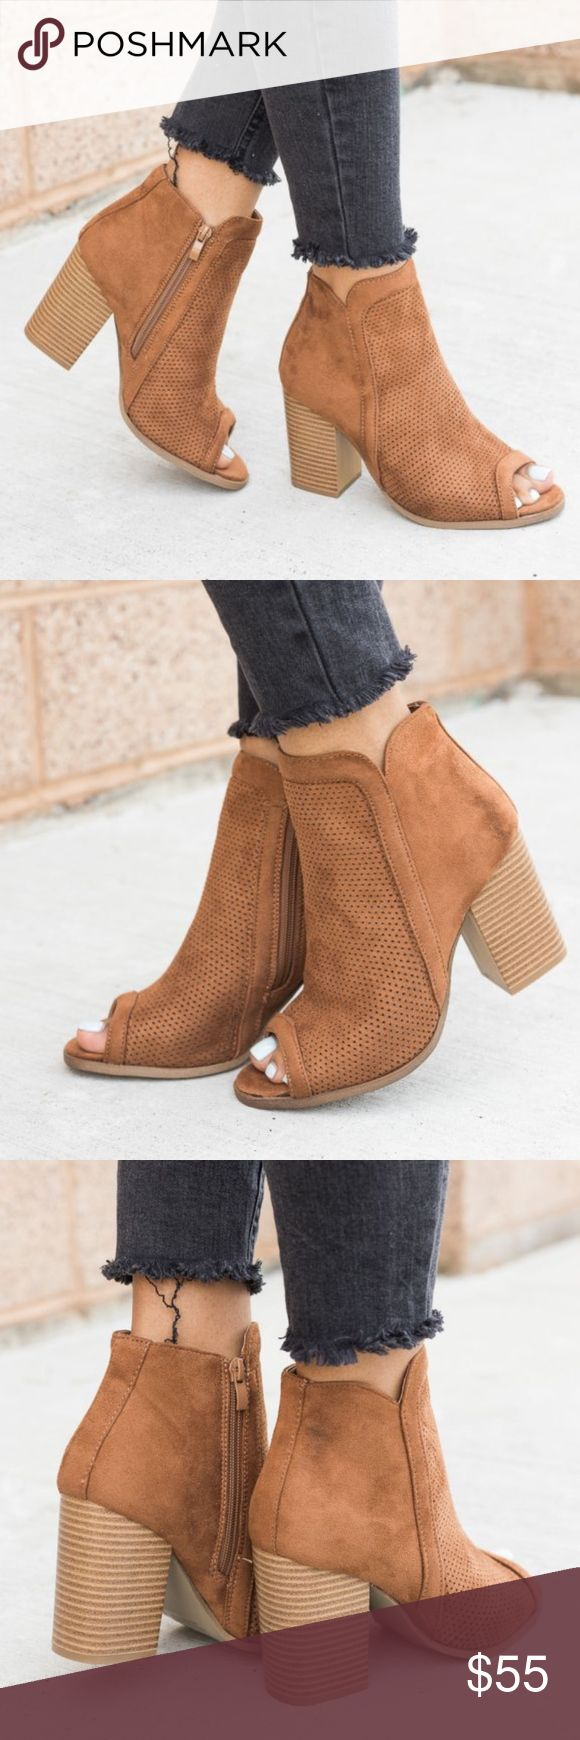 """SIENNA Peep Toe Bootie faux suede material, and approx. a 3.5"""" chunky heel.    true to size.  NO TRADE PRICE FIRM Shoes Ankle Boots & Booties"""